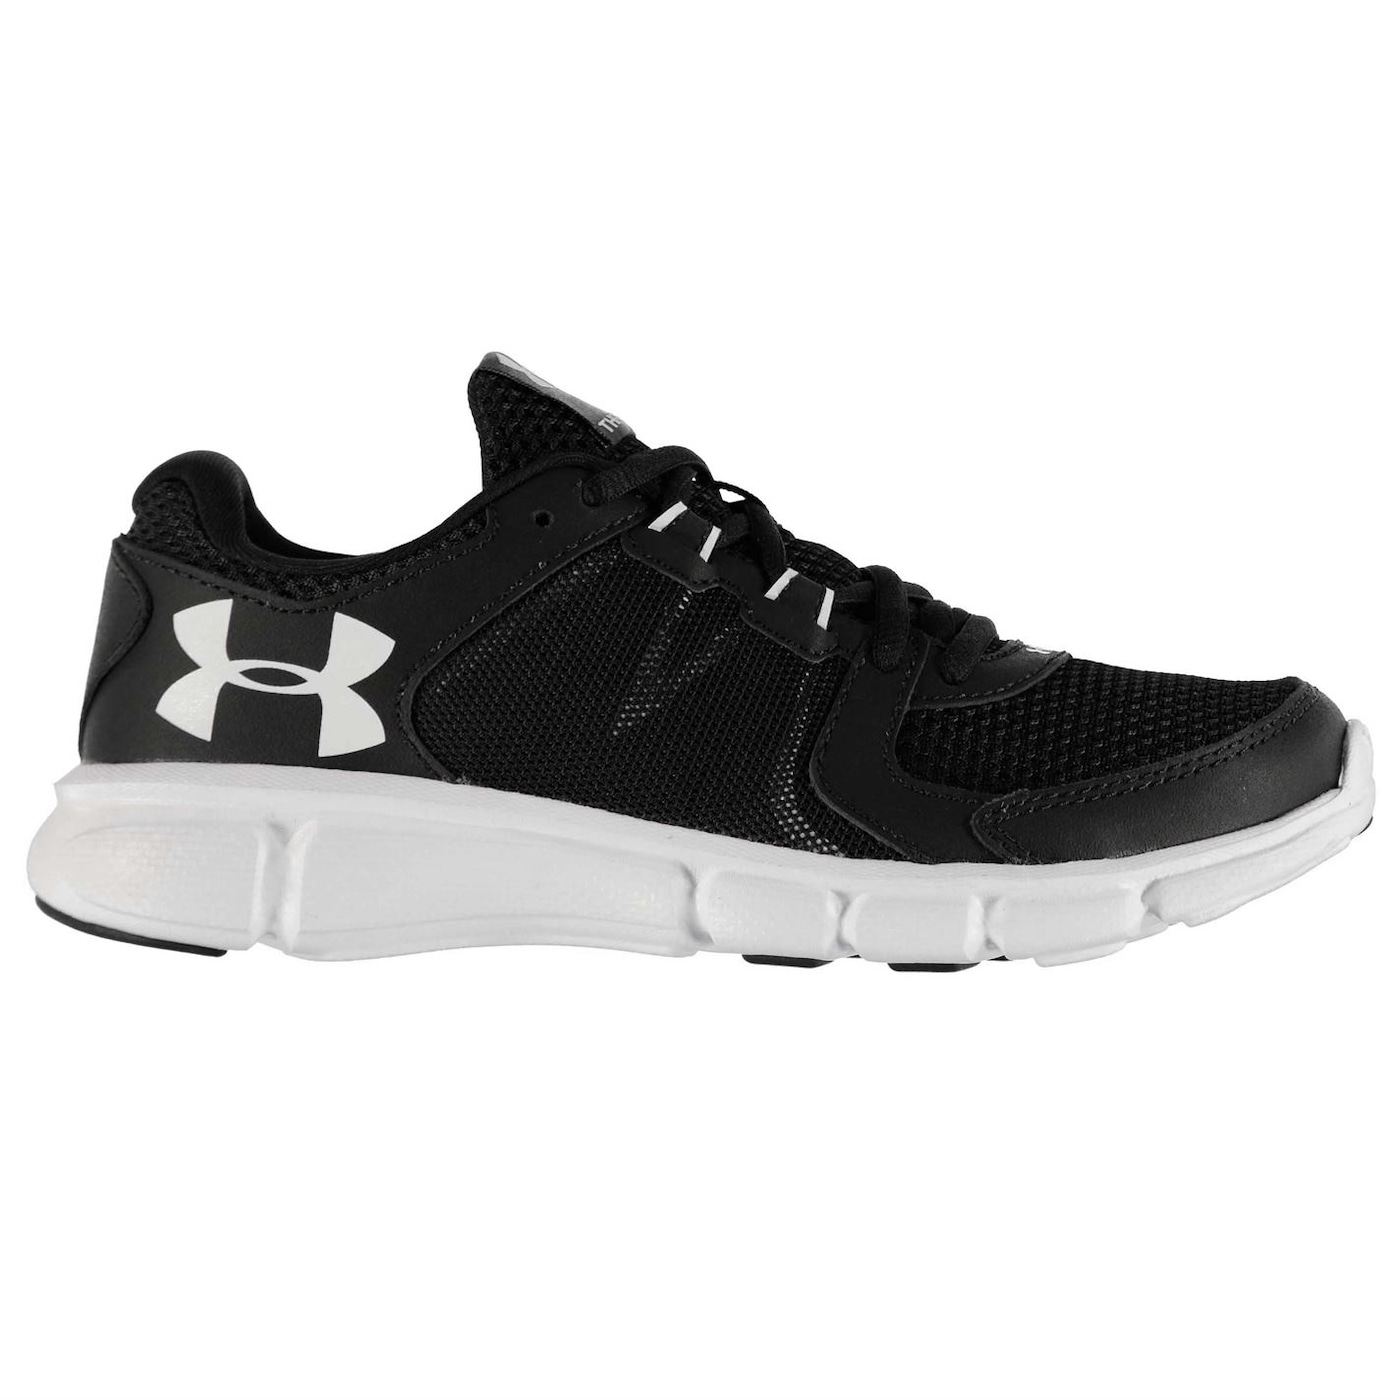 Under Armour Thrill 2 Running Shoes Ladies